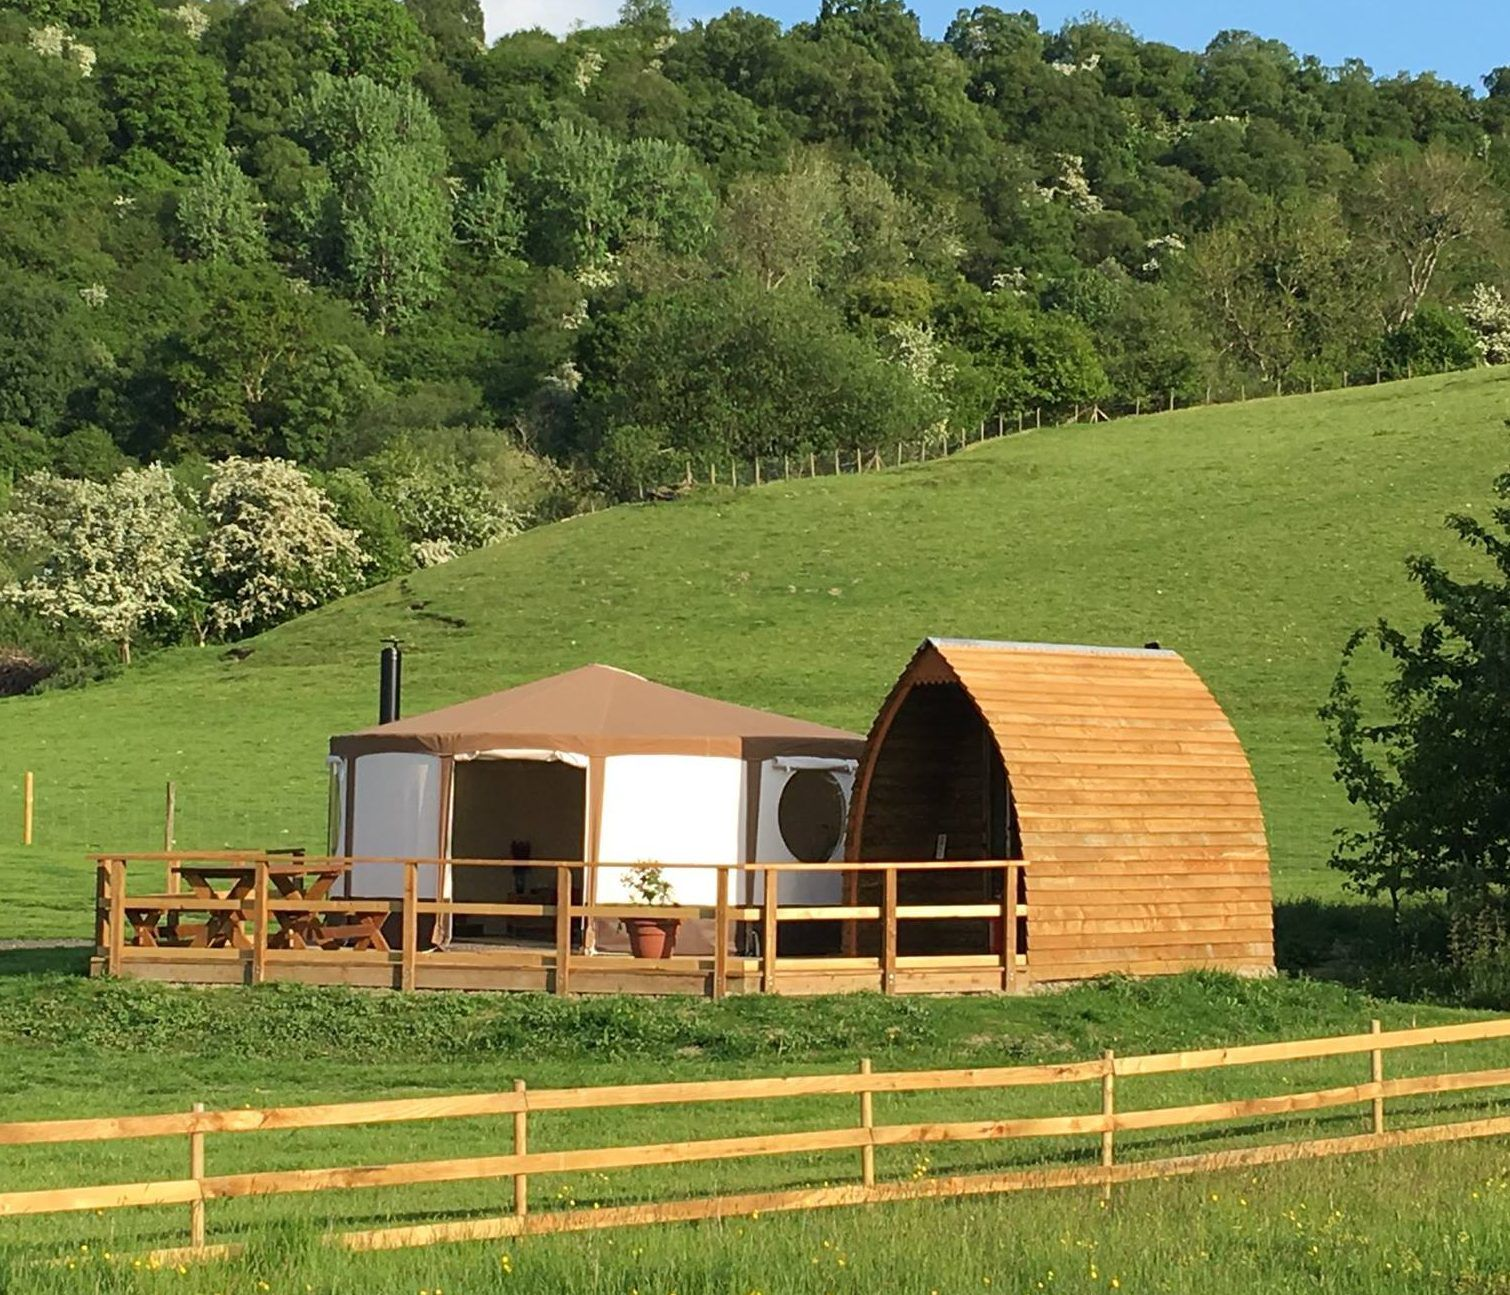 Fforest Fields Glamping